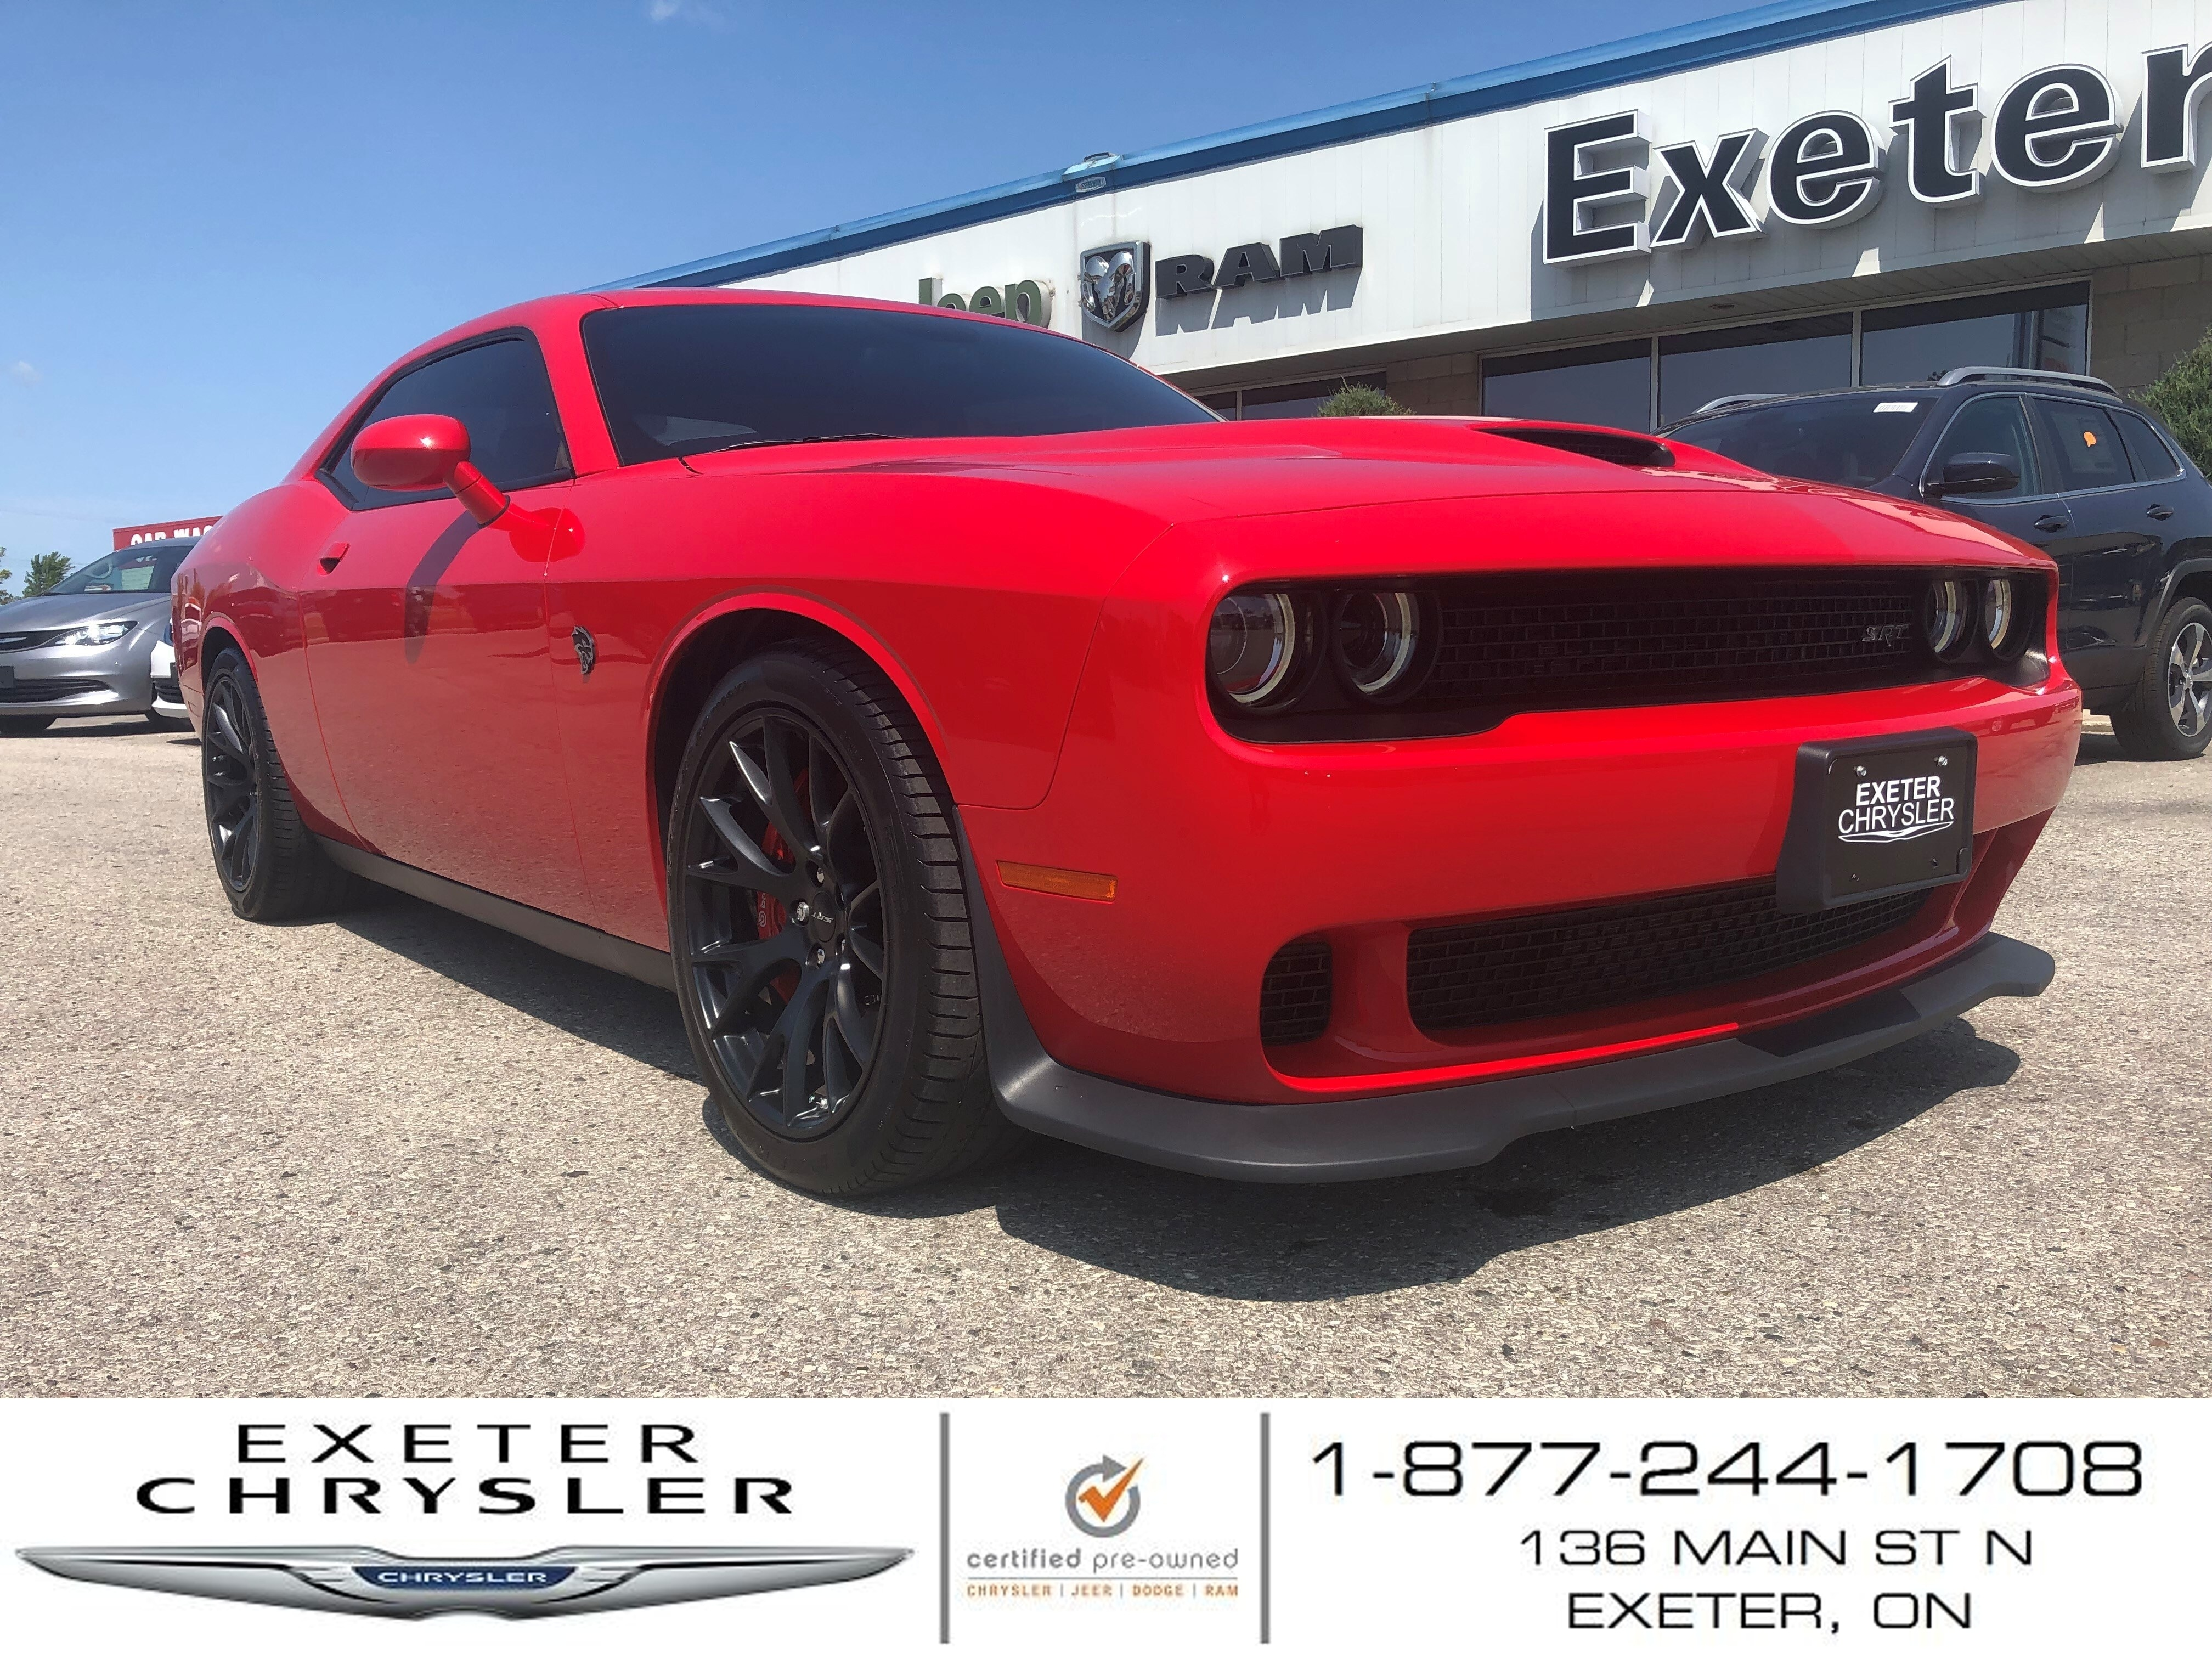 2015 Dodge Challenger SRT Hellcat l 6-Speed Manual TREMEC Trans. Coupé